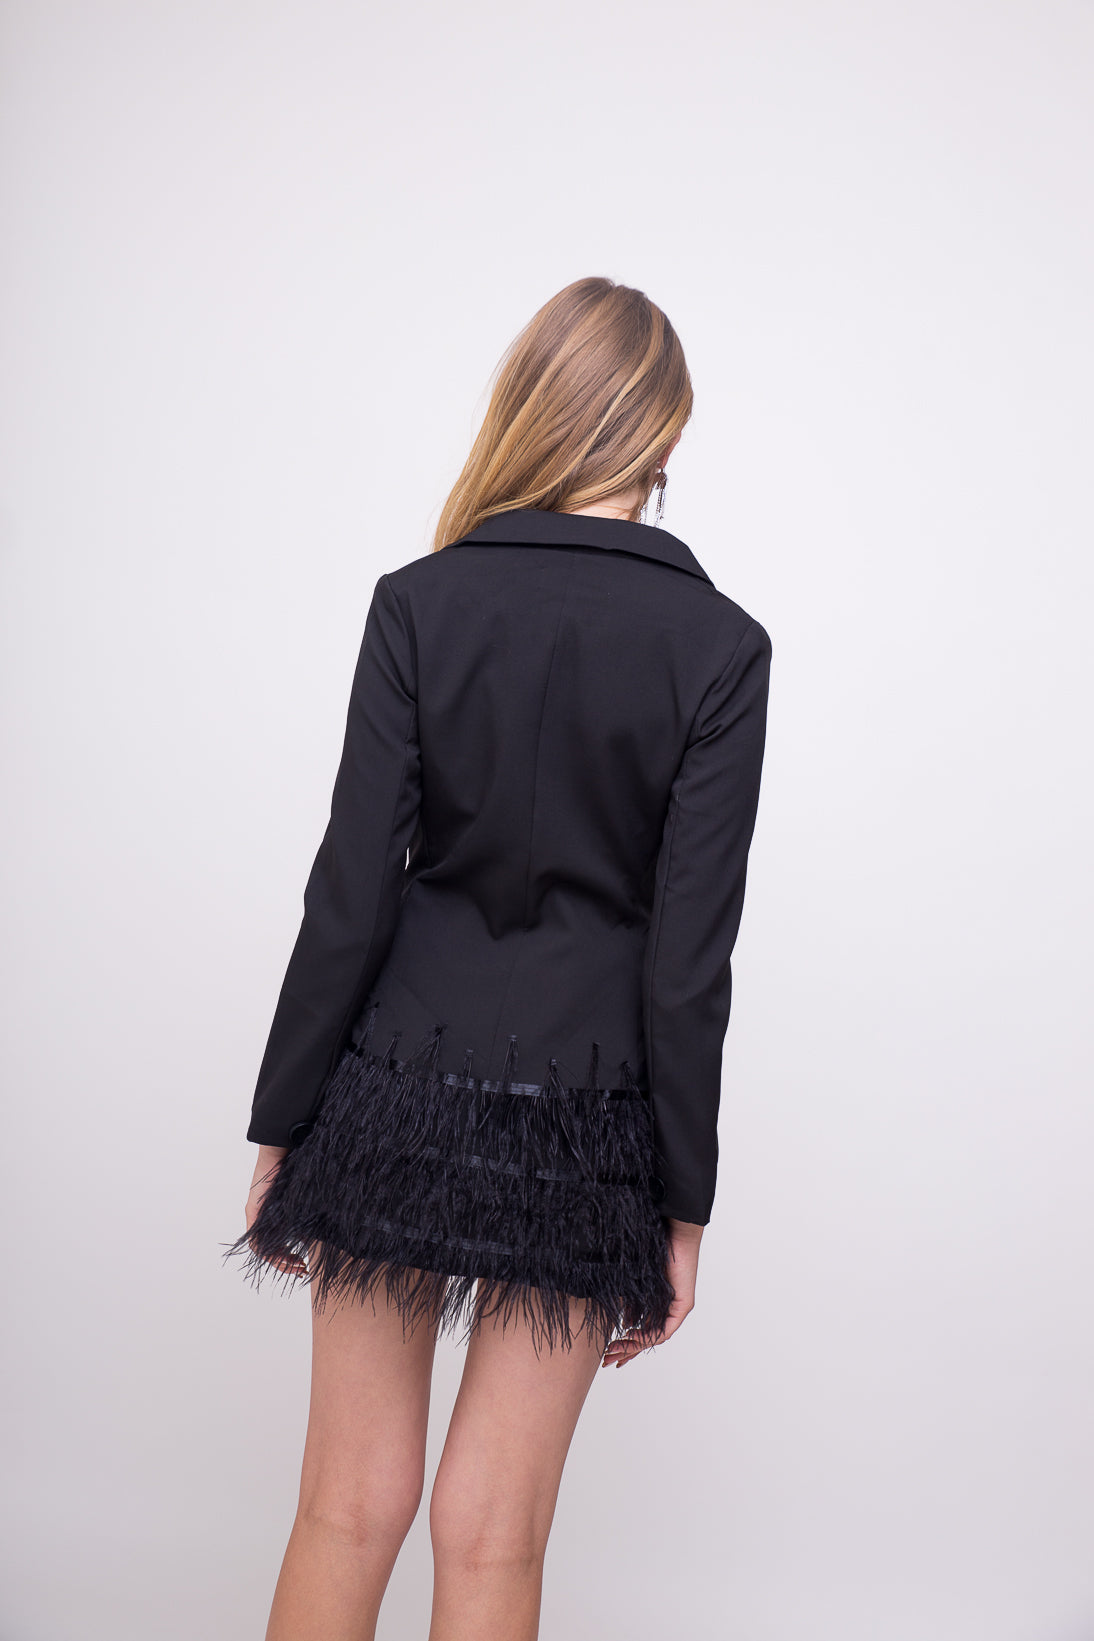 elegant black jacket dress with feather fringe details